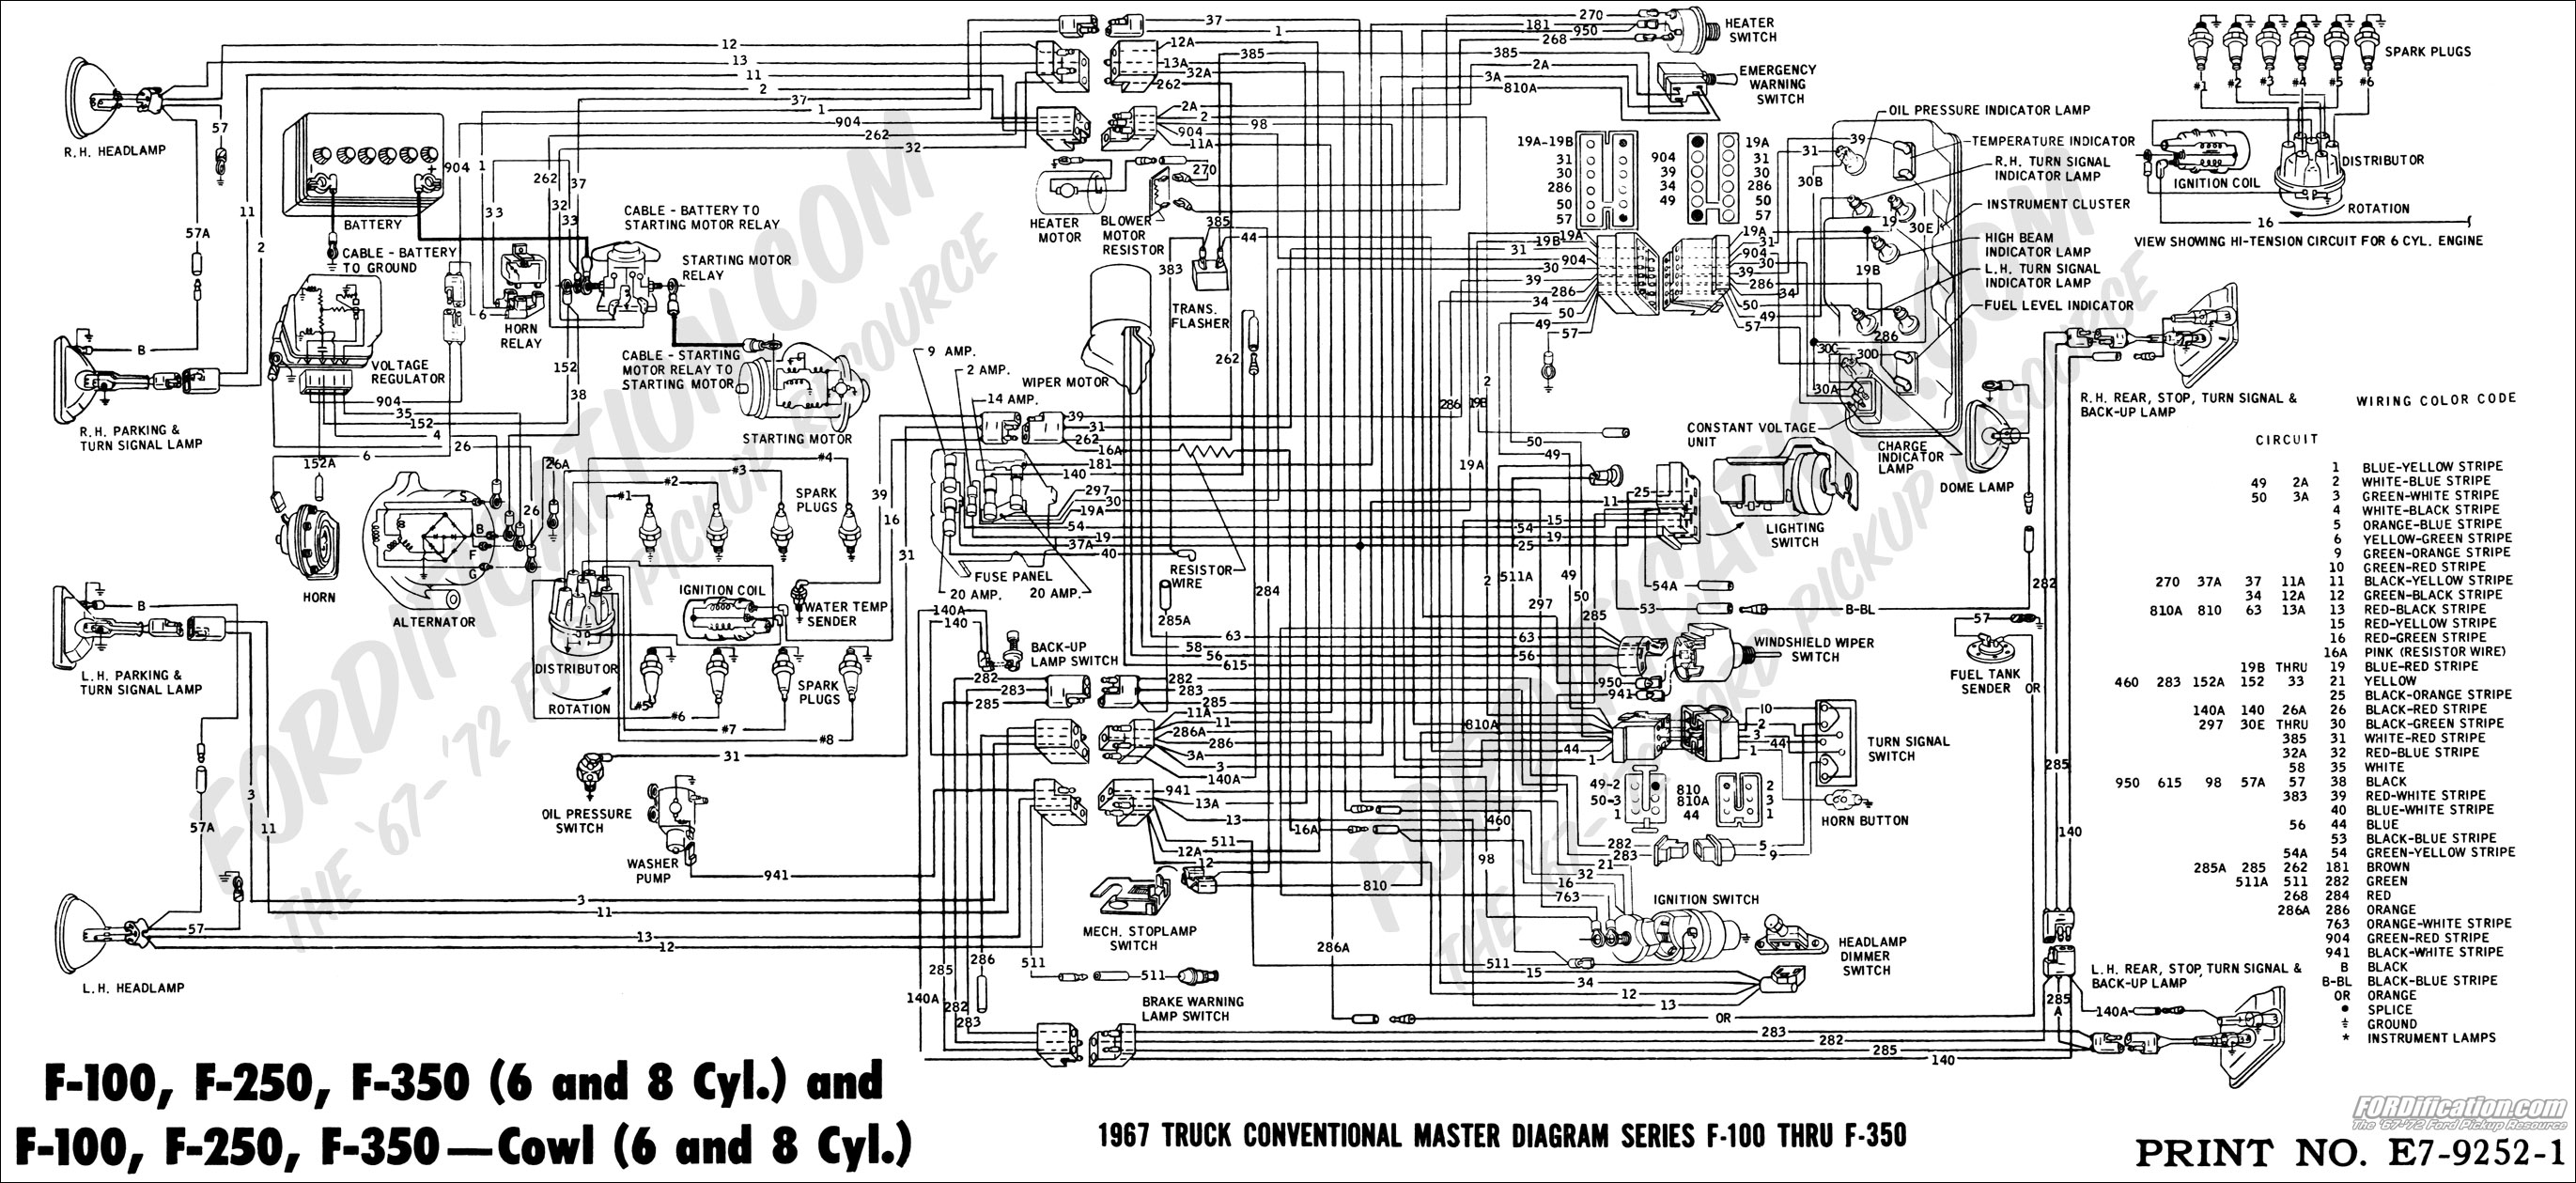 ford truck technical drawings and schematics section h wiring rh fordification com Ford Ignition Switch Wiring 1973 ford truck ignition switch wiring